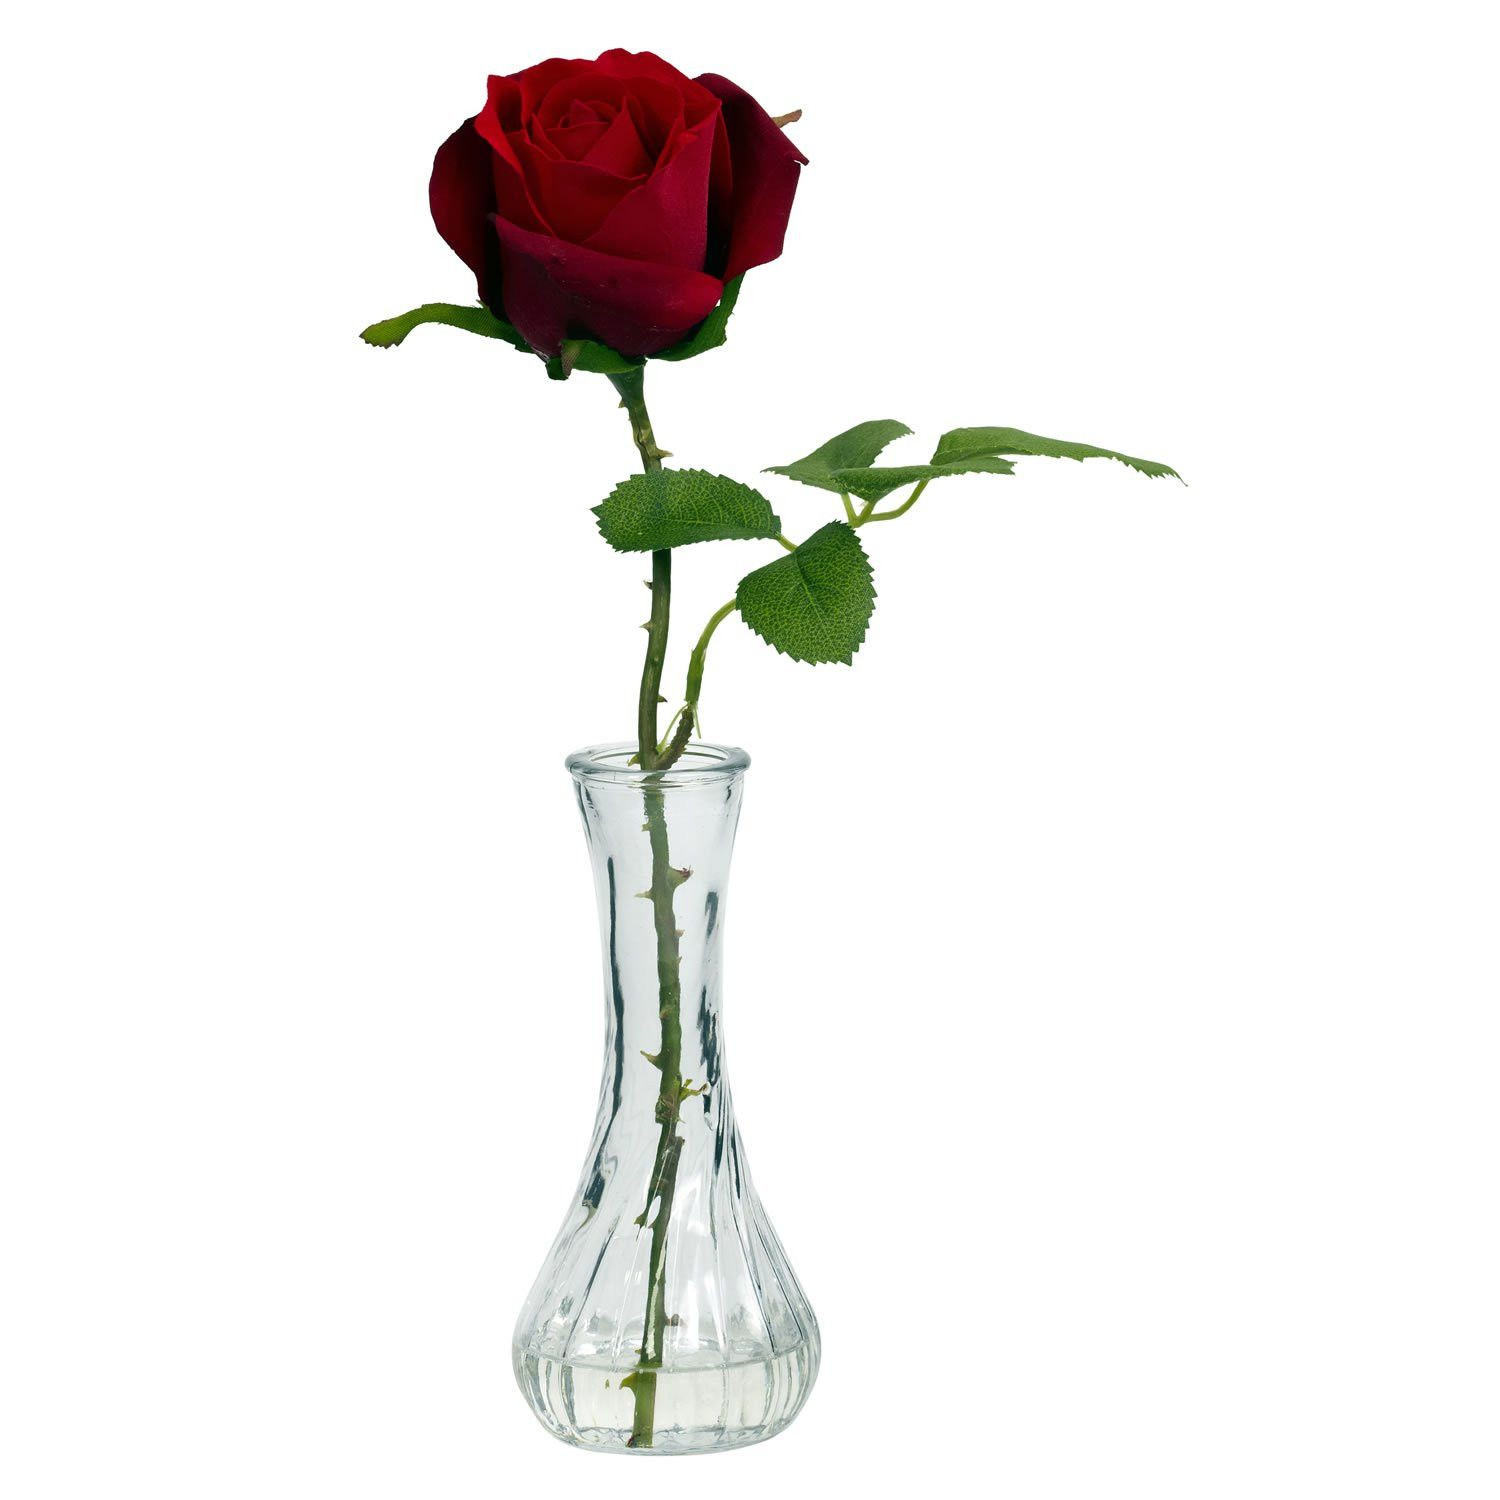 vase with hearts of pictures of roses in a vase inspirational vase redh vases single in pictures of roses in a vase inspirational vase redh vases single rose in vasei 0d a